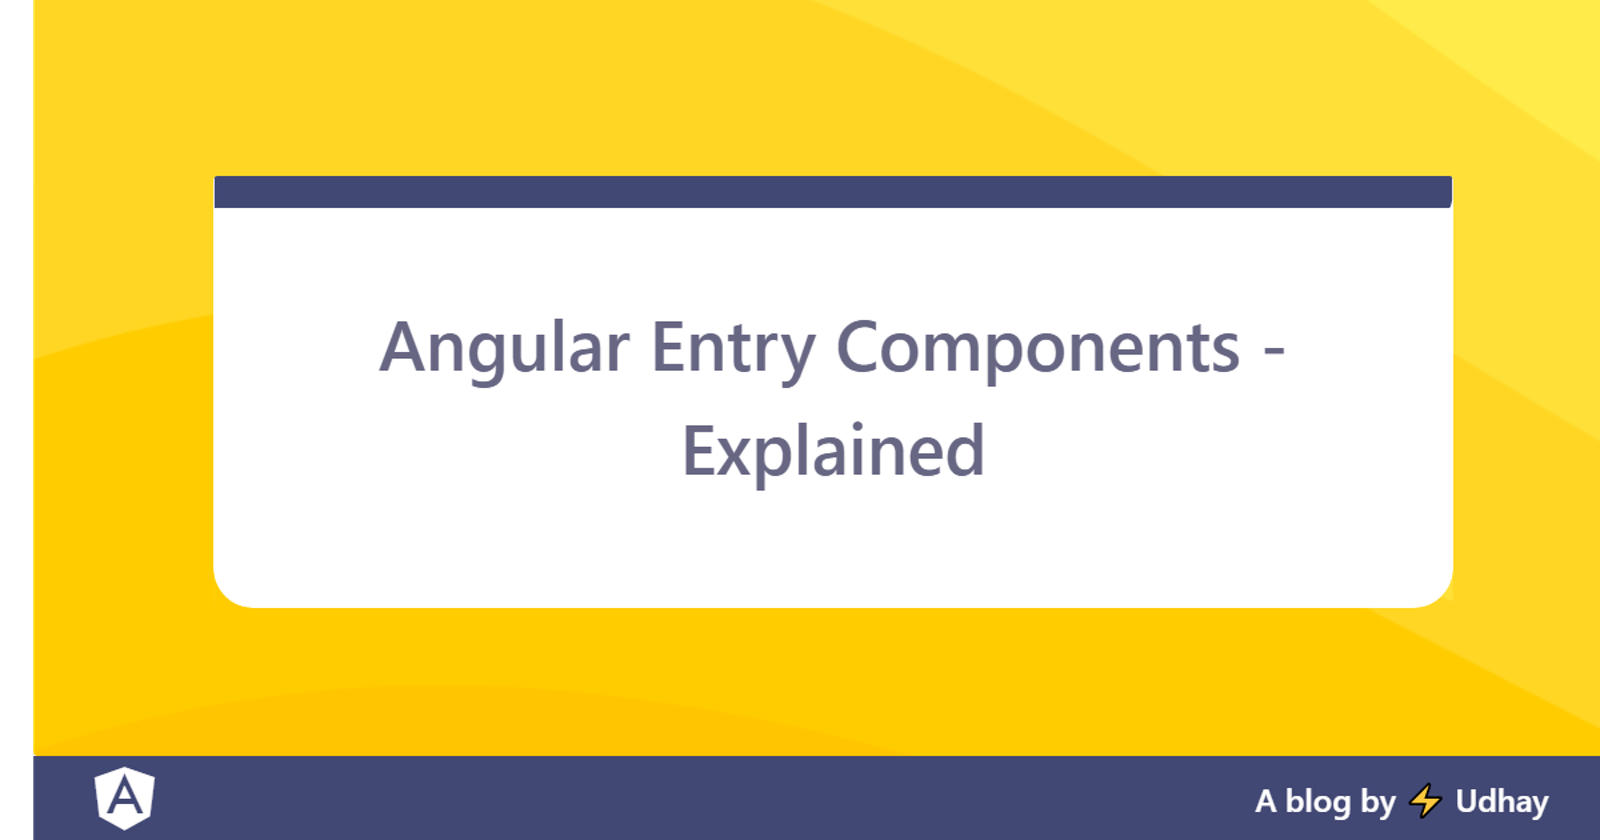 Angular Entry Components - Explained